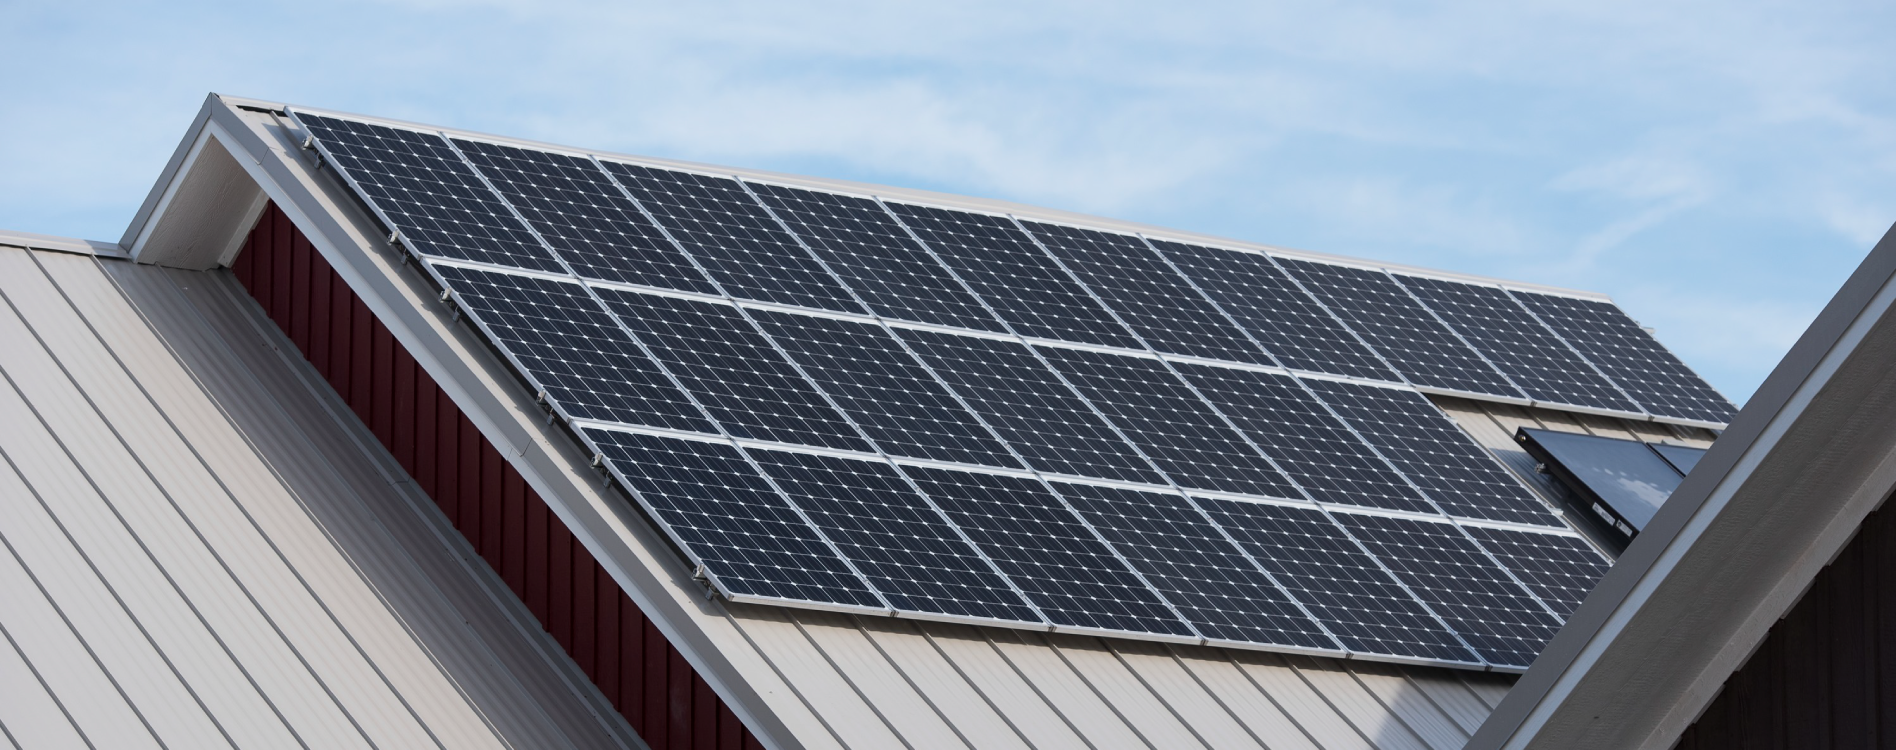 top four benefits of installing solar panels on your home green rh greenhomeguide com Wiring 24 Volt Solar Panel wiring solar panels to house electrical sys